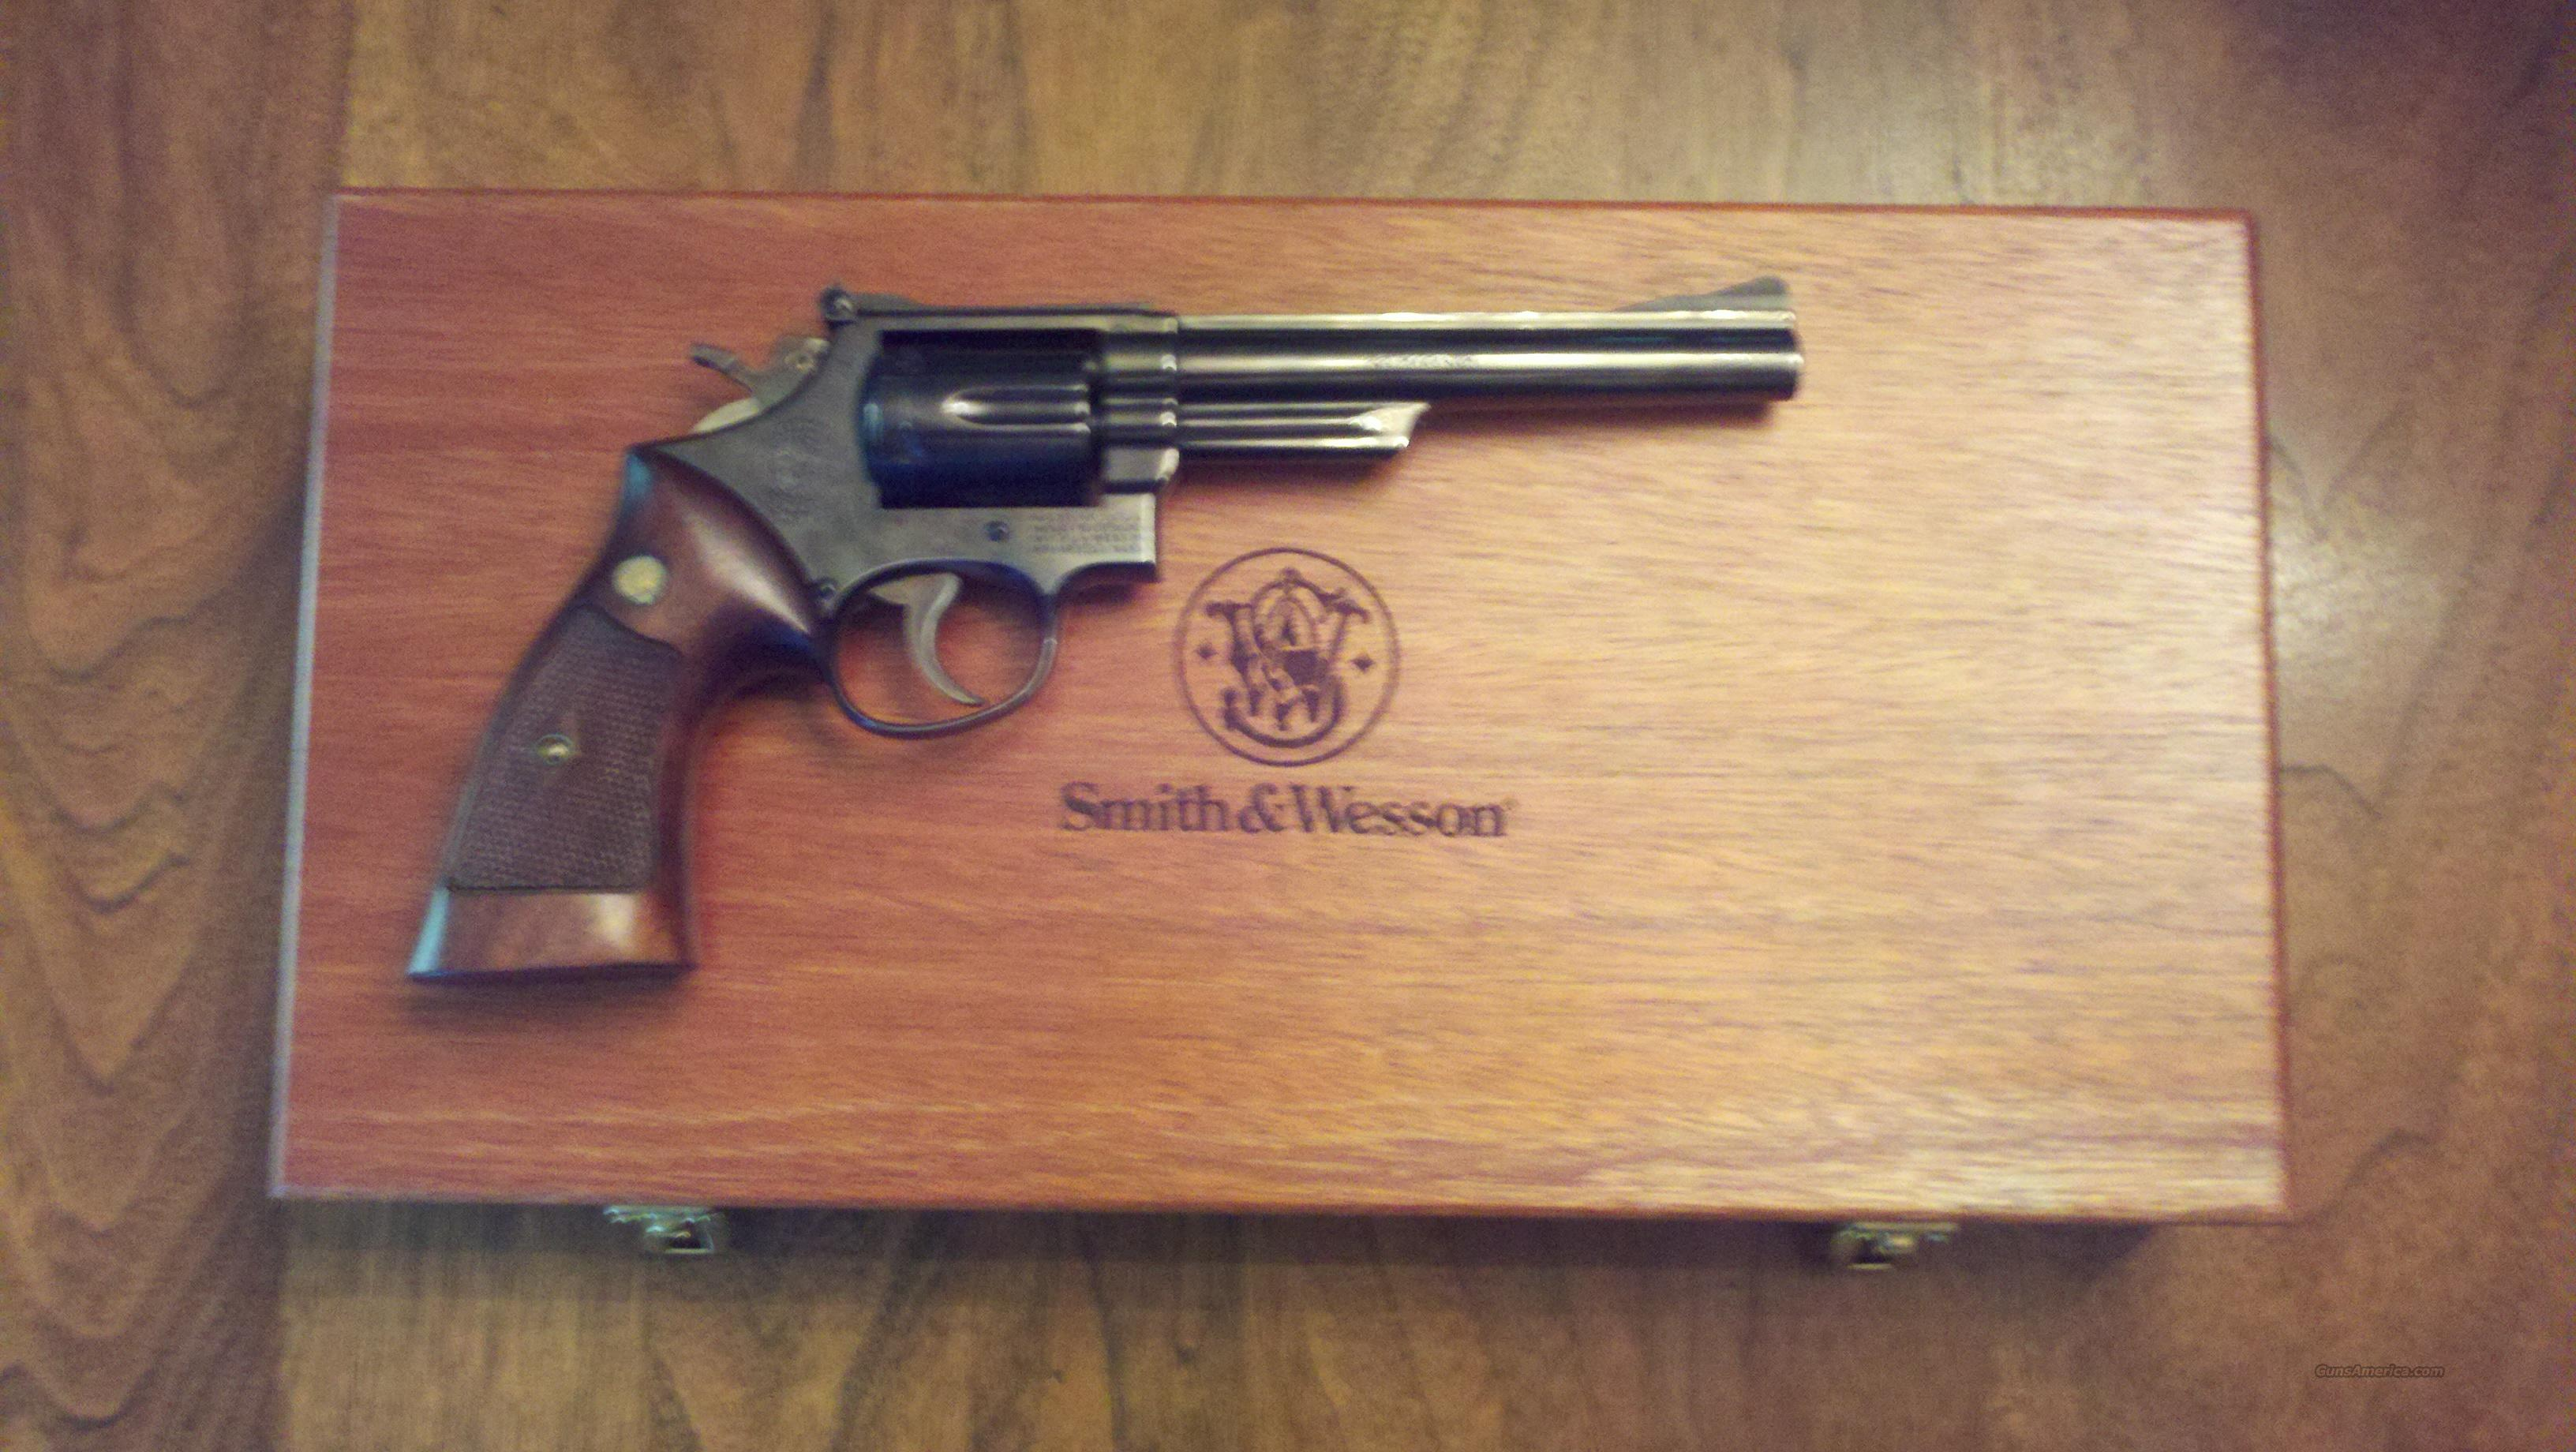 S&W Model 53 22 Jet Magnum and 22 Magnum  Guns > Pistols > Smith & Wesson Revolvers > Full Frame Revolver